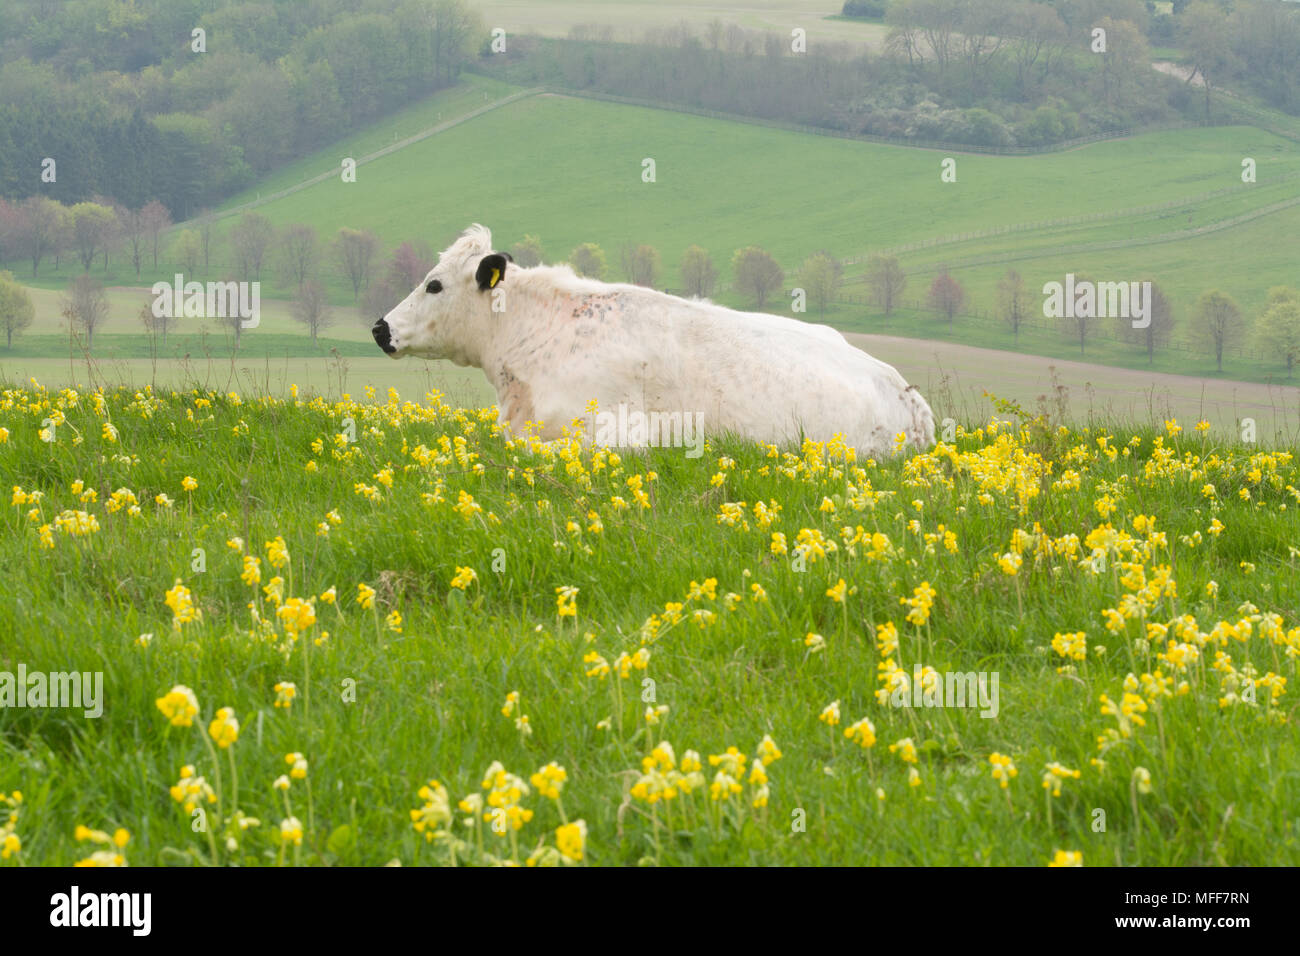 british-white-cow-in-a-field-of-cowslips-at-magdalen-hill-down-butterfly-conservation-nature-reserve-in-the-south-downs-national-park-hampshire-uk-MFF7RN.jpg